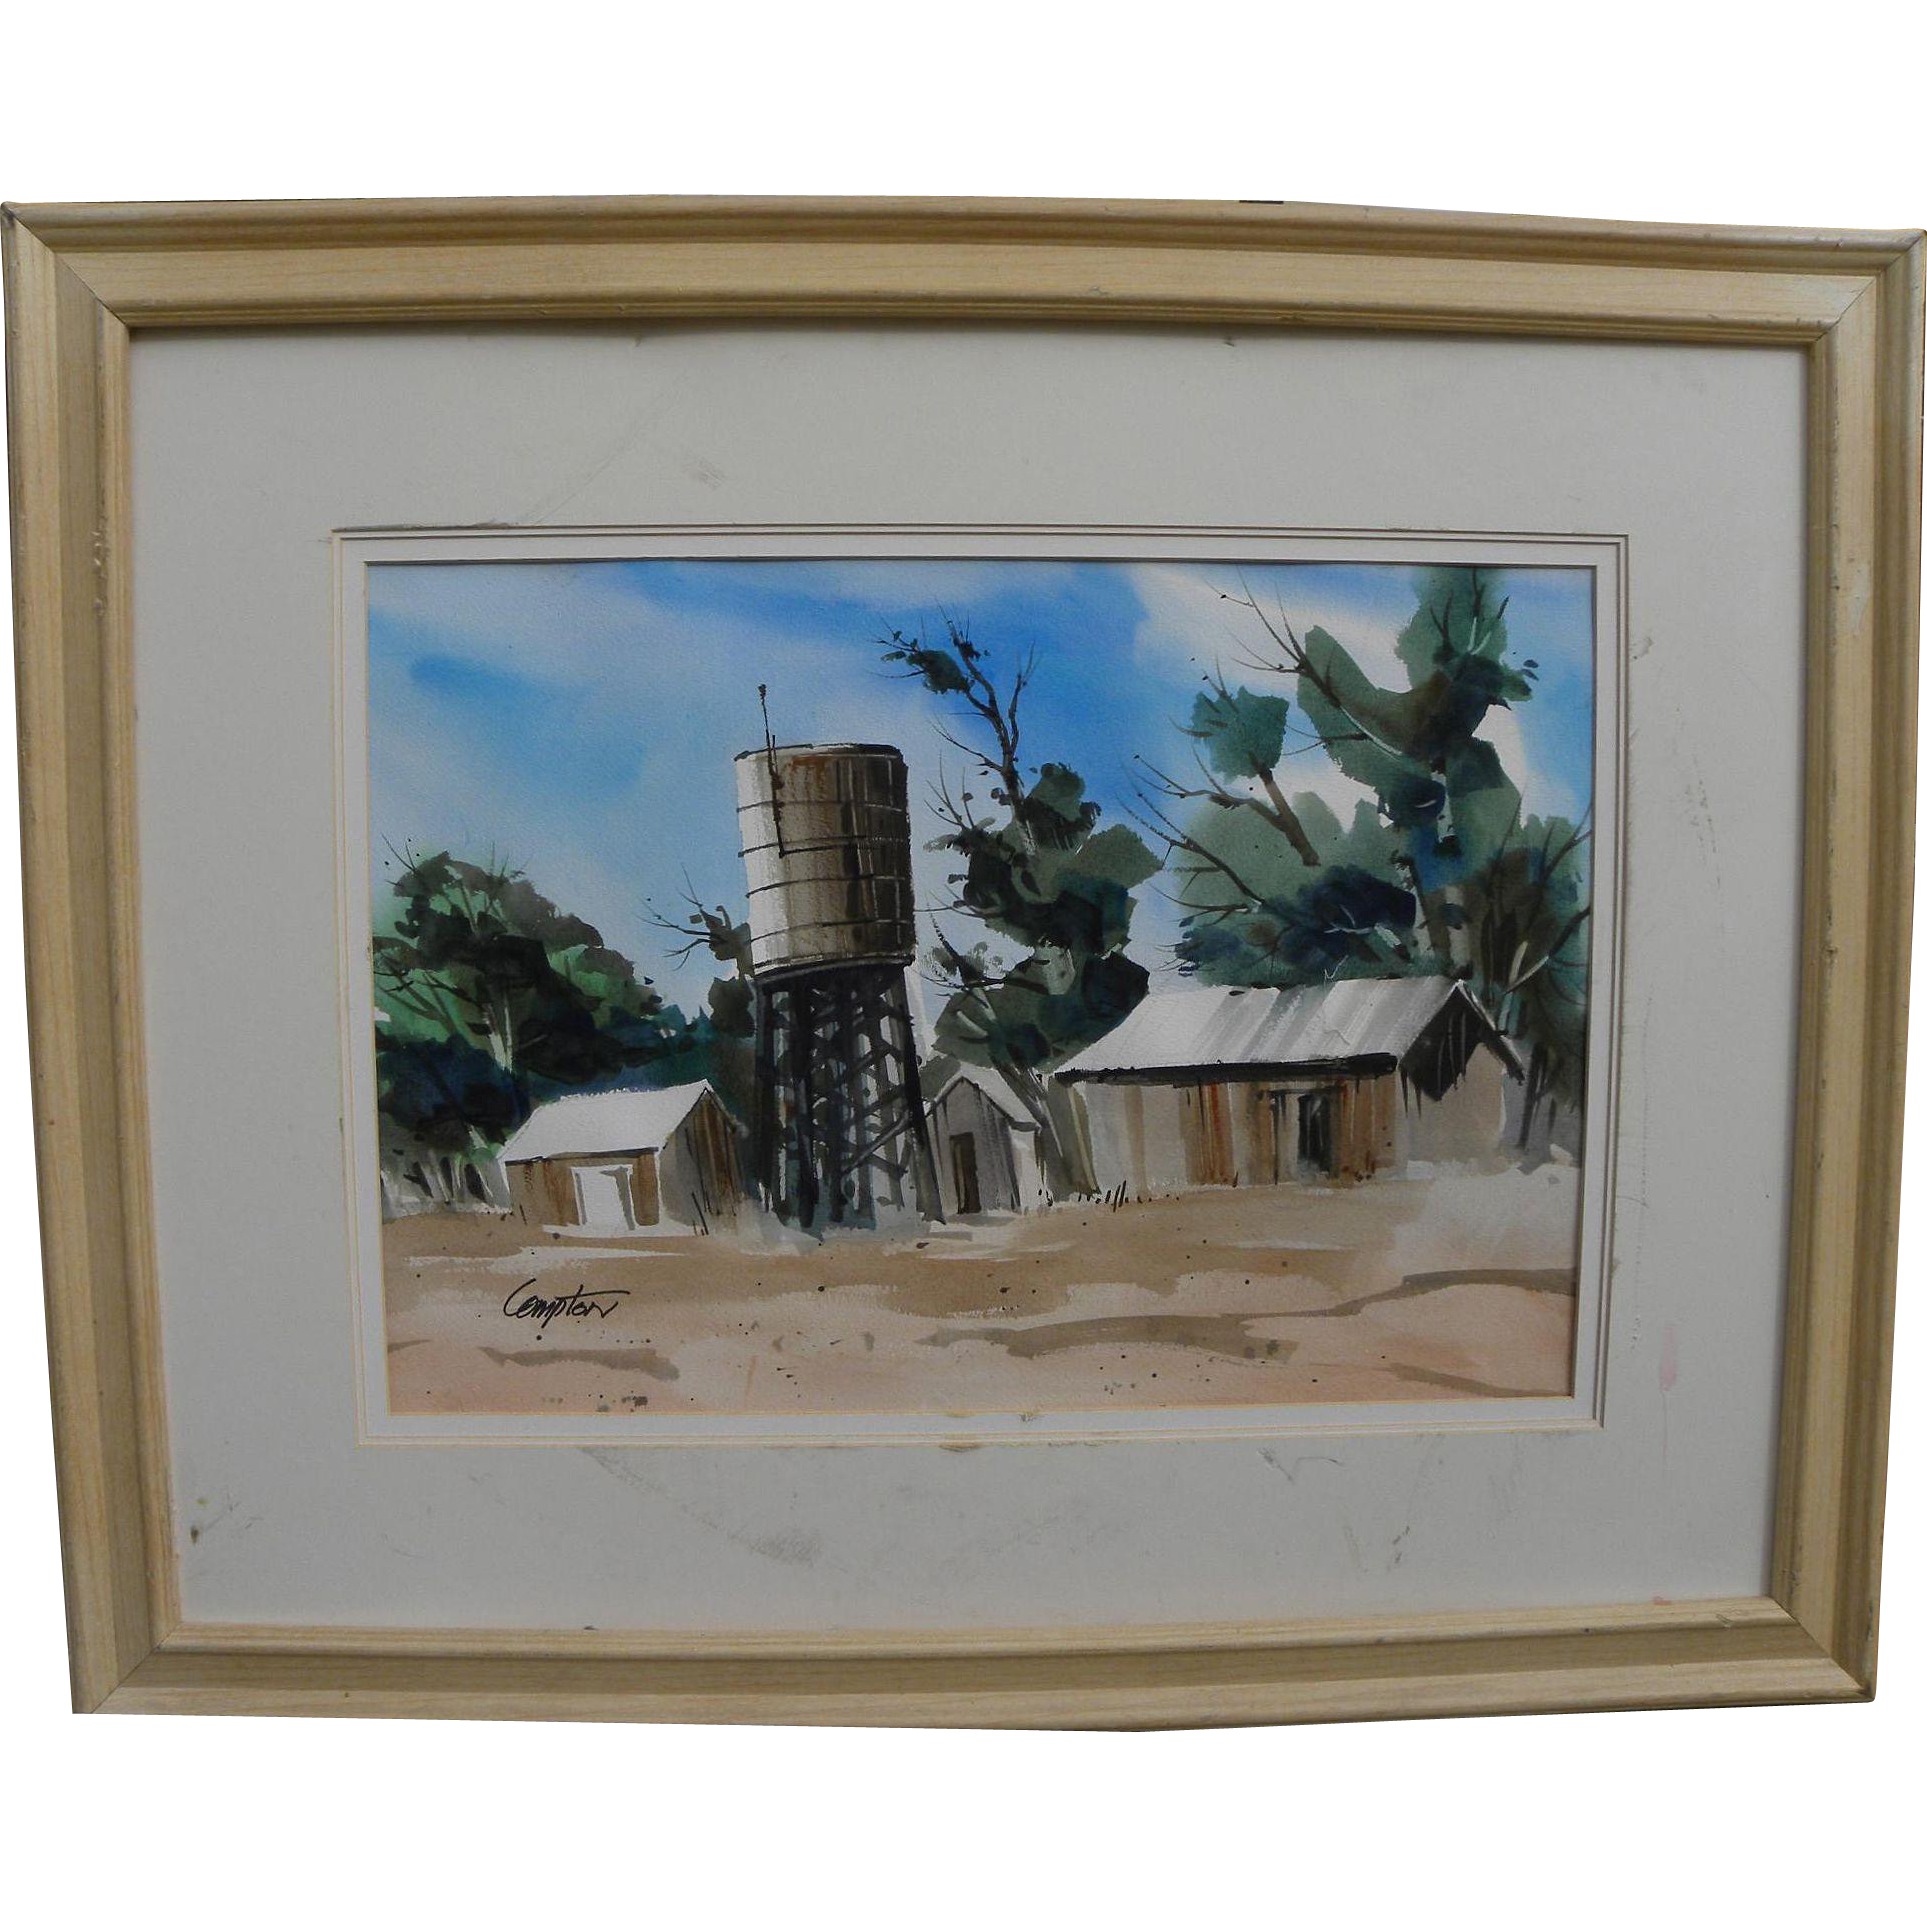 Contemporary California watercolor painting of outbuildings in a dry landscape signed Compton